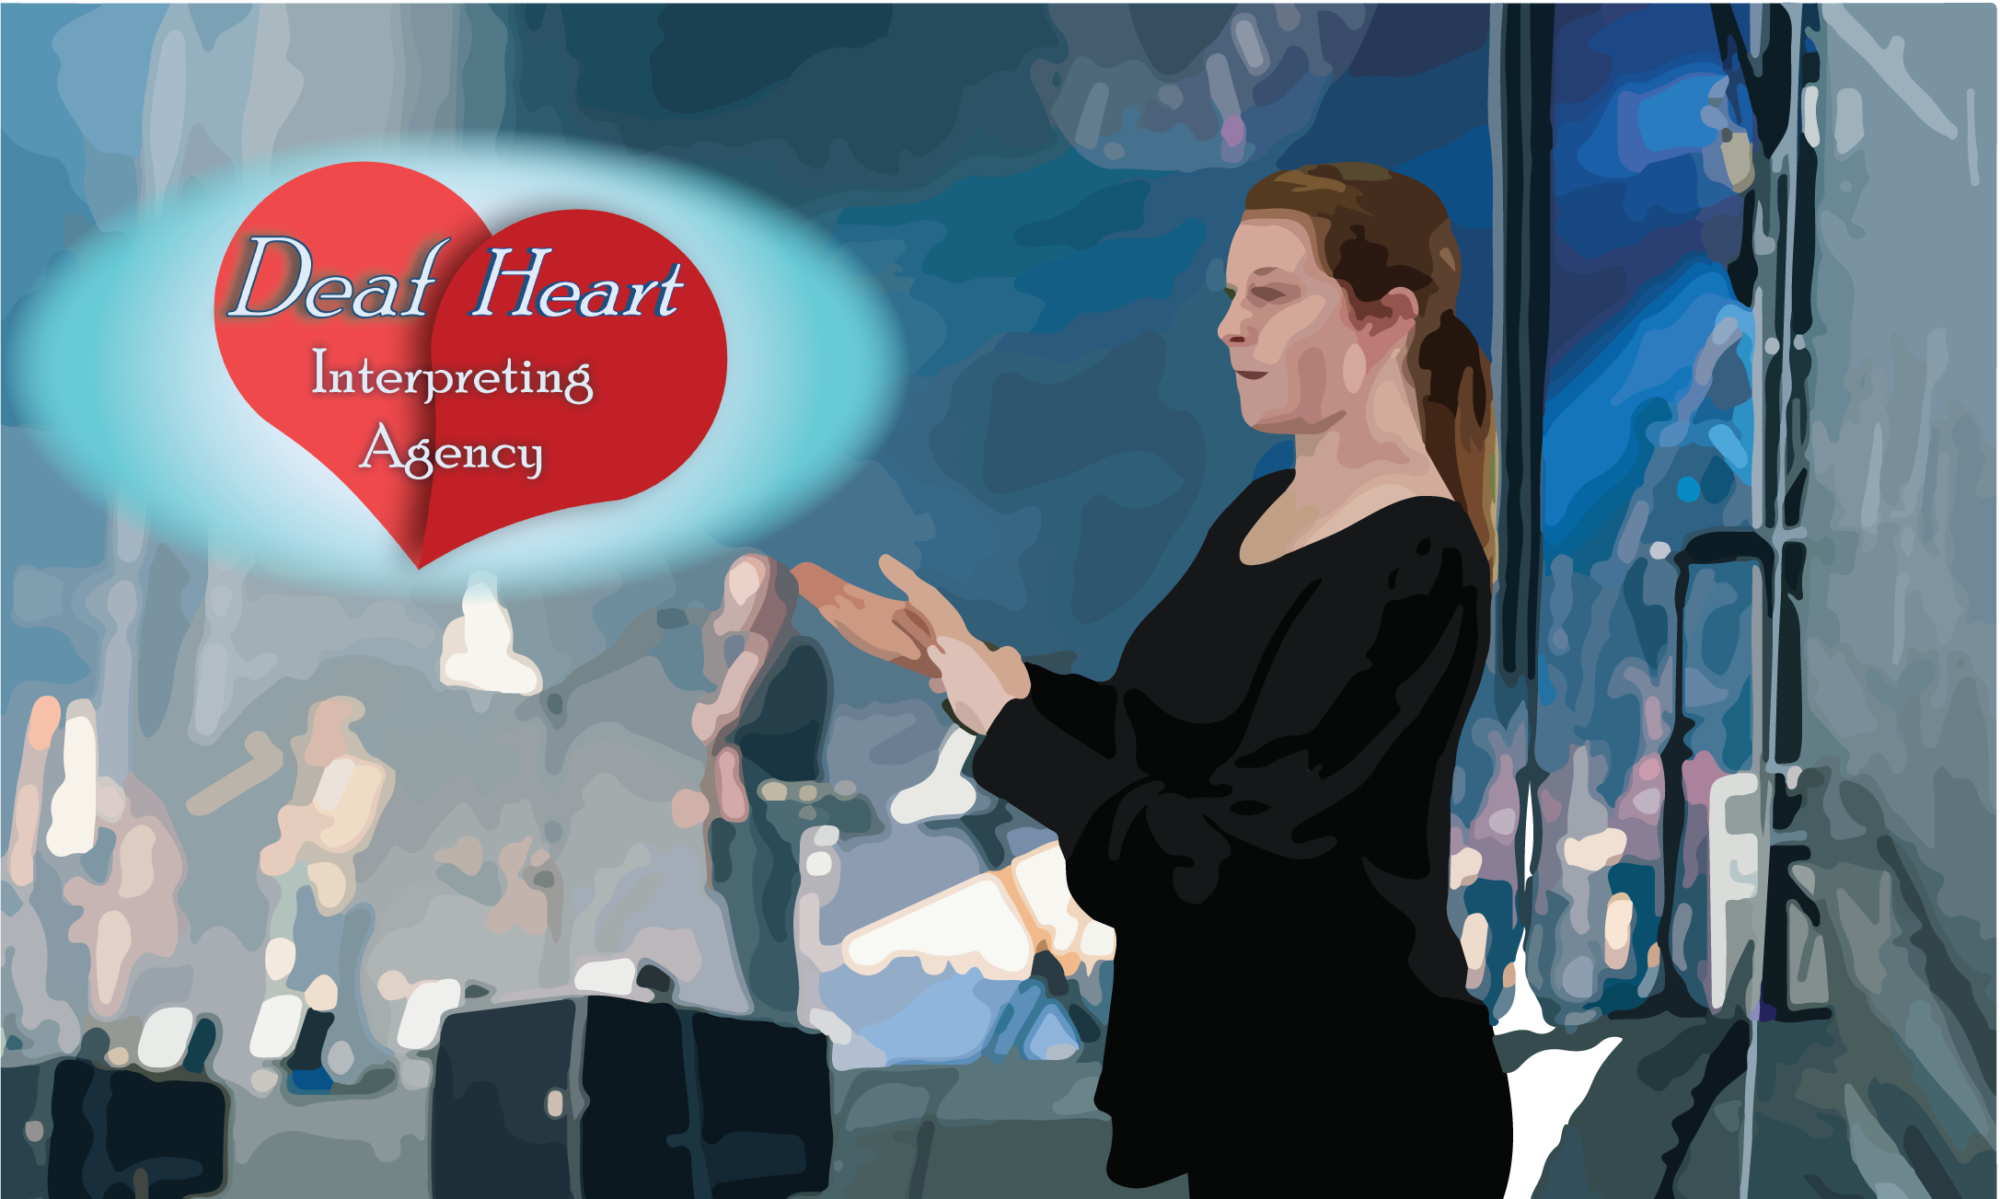 Deaf Heart Interpreting Agency